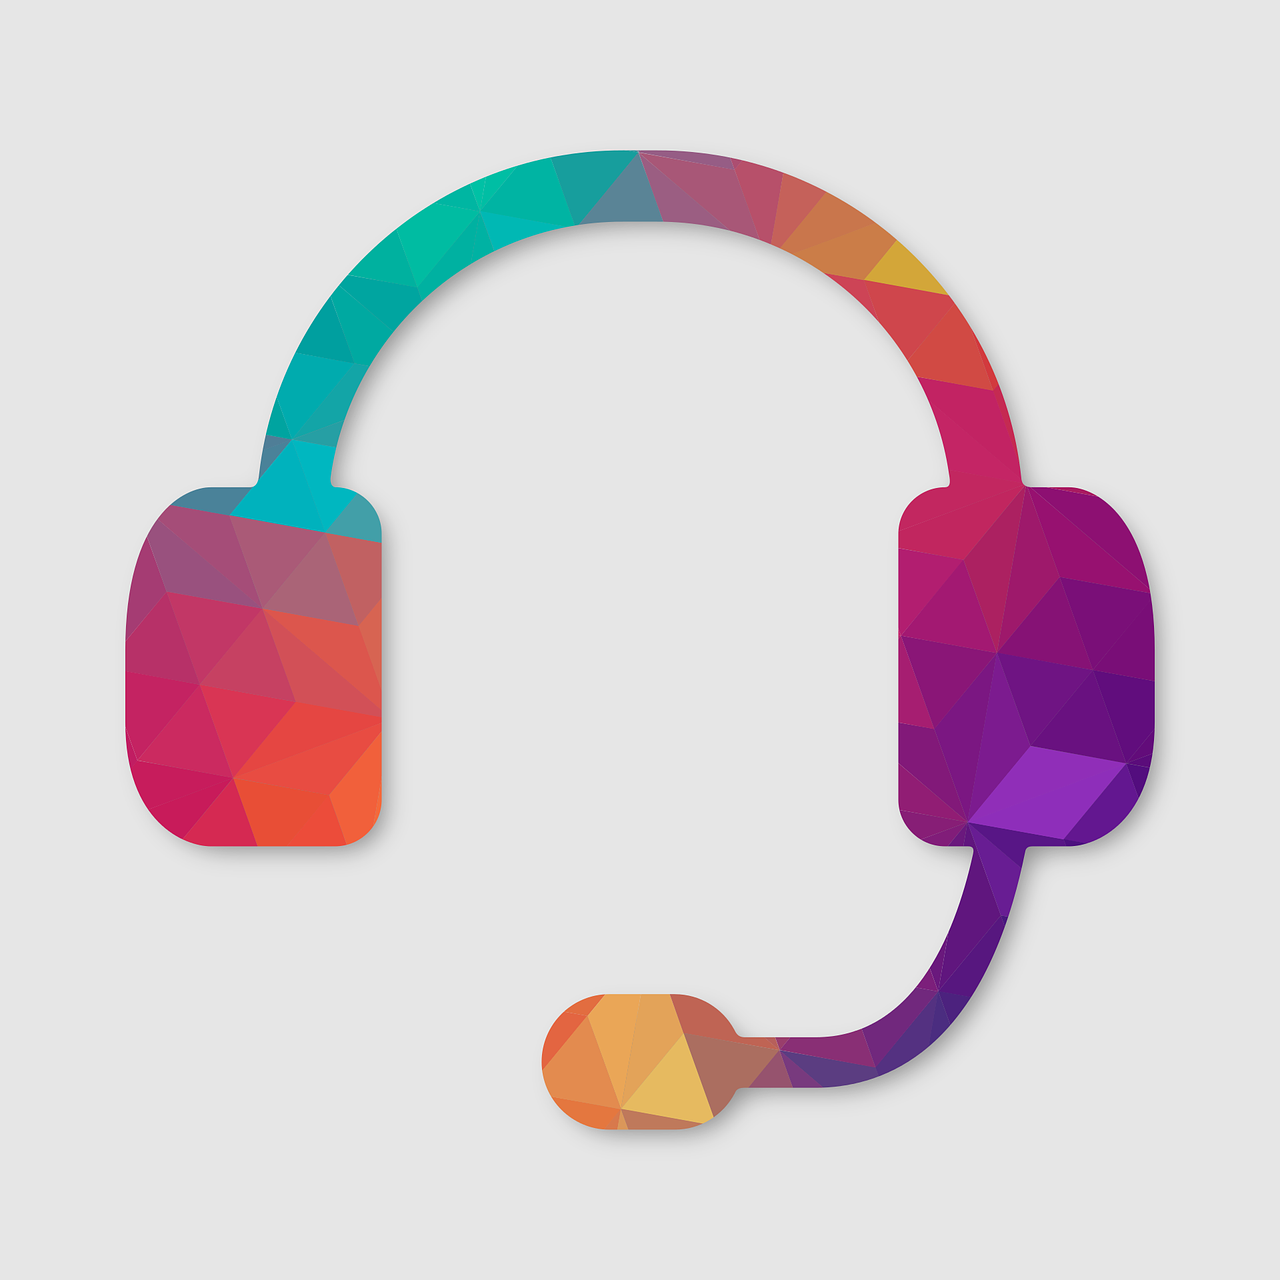 headphones-1935971_1280.png